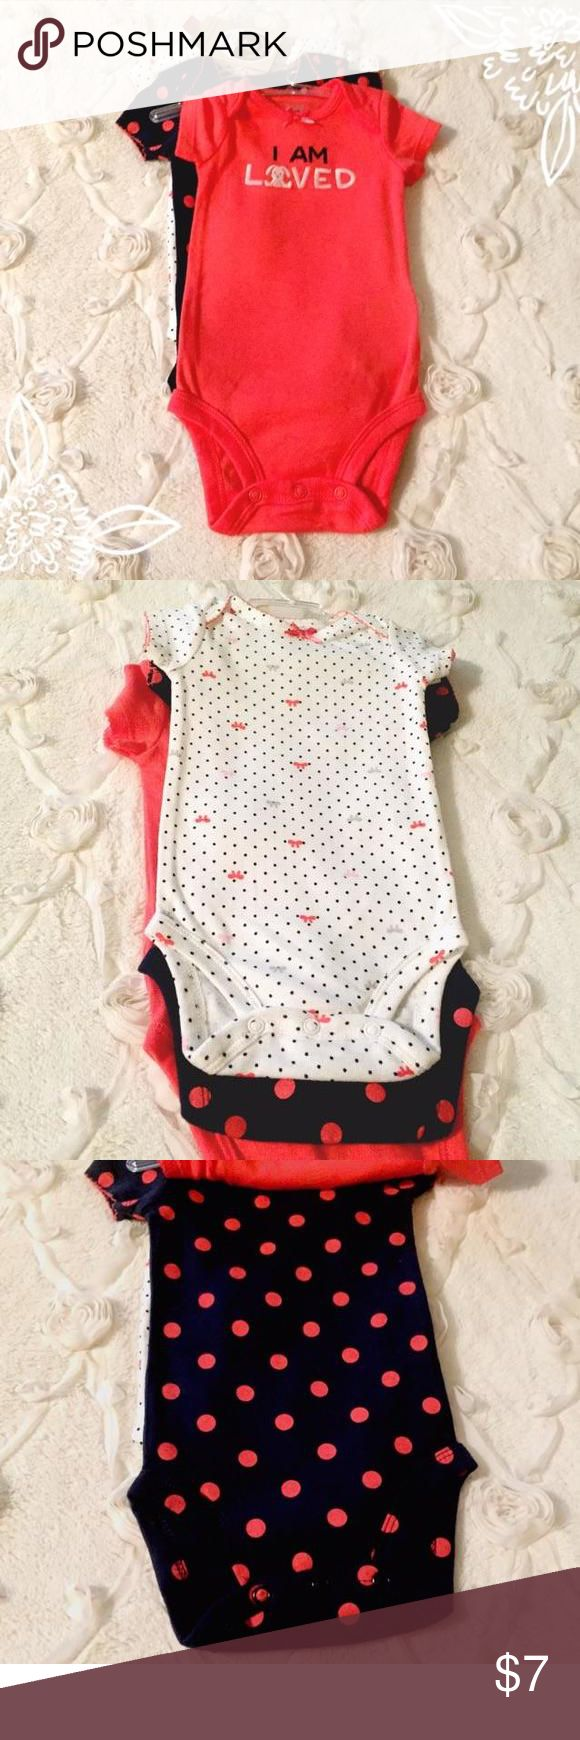 "NWT I Am Loved Set New with tags child of mine Carters set of three onesies, one bunny ""I am loved"" onesie, a navy blue with coral polkadots onesie, and a white onesie with polkadots and bows. Size 0-3 months Carters Dresses"